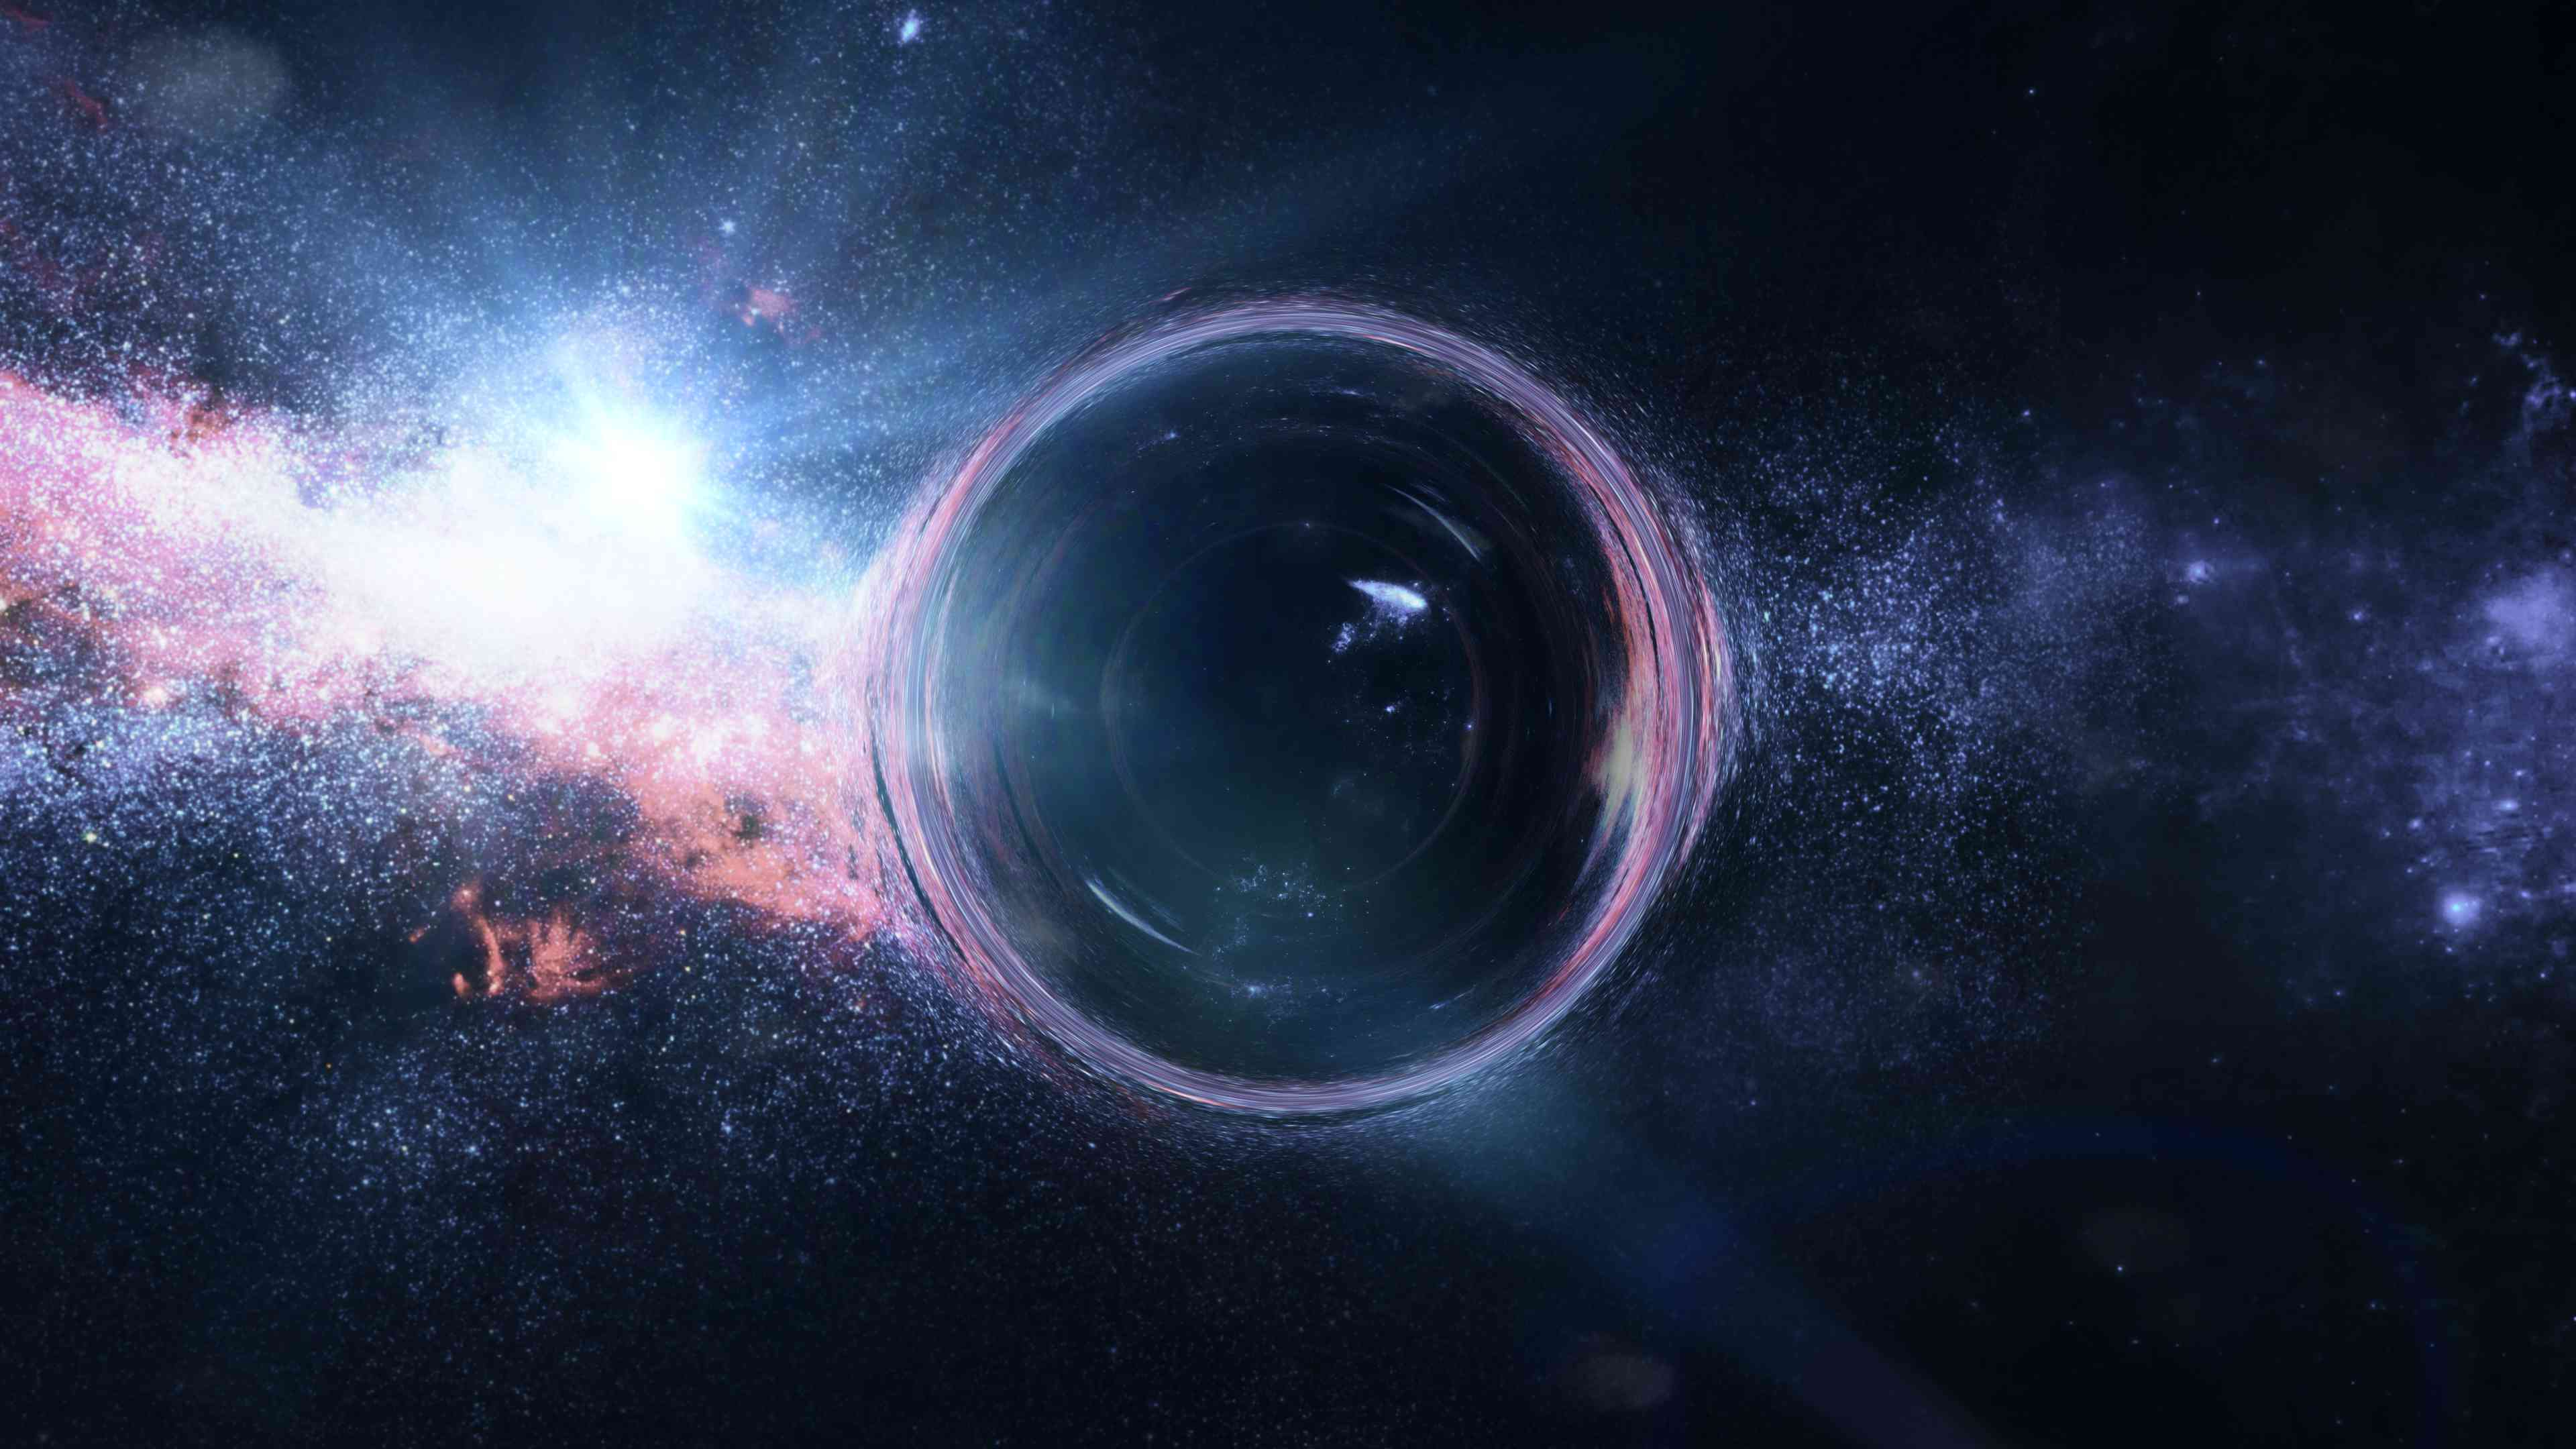 A rendering of a black hole.